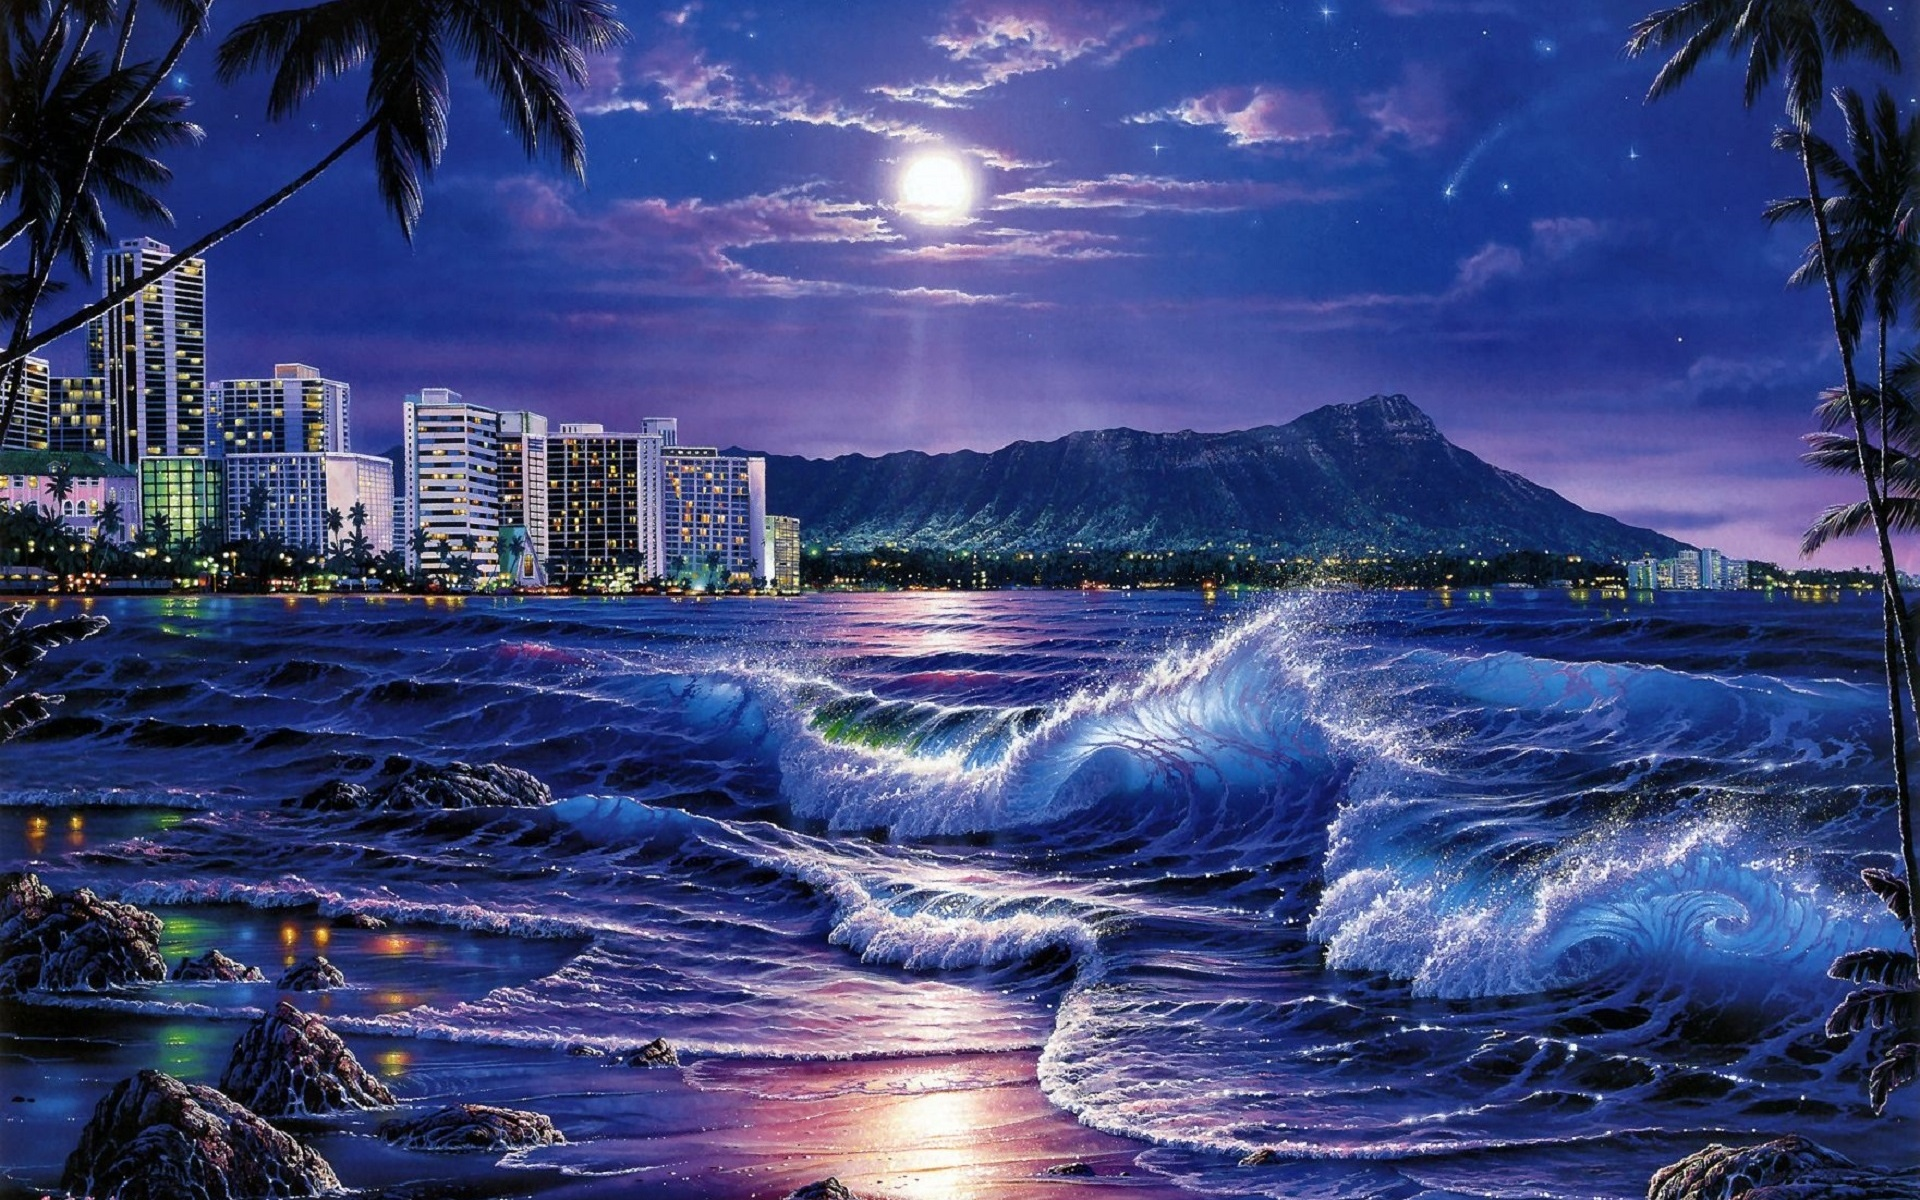 Ocean City Moon Night Hawaii Wallpapers Ocean City Moon Night Hawaii Stock Photos